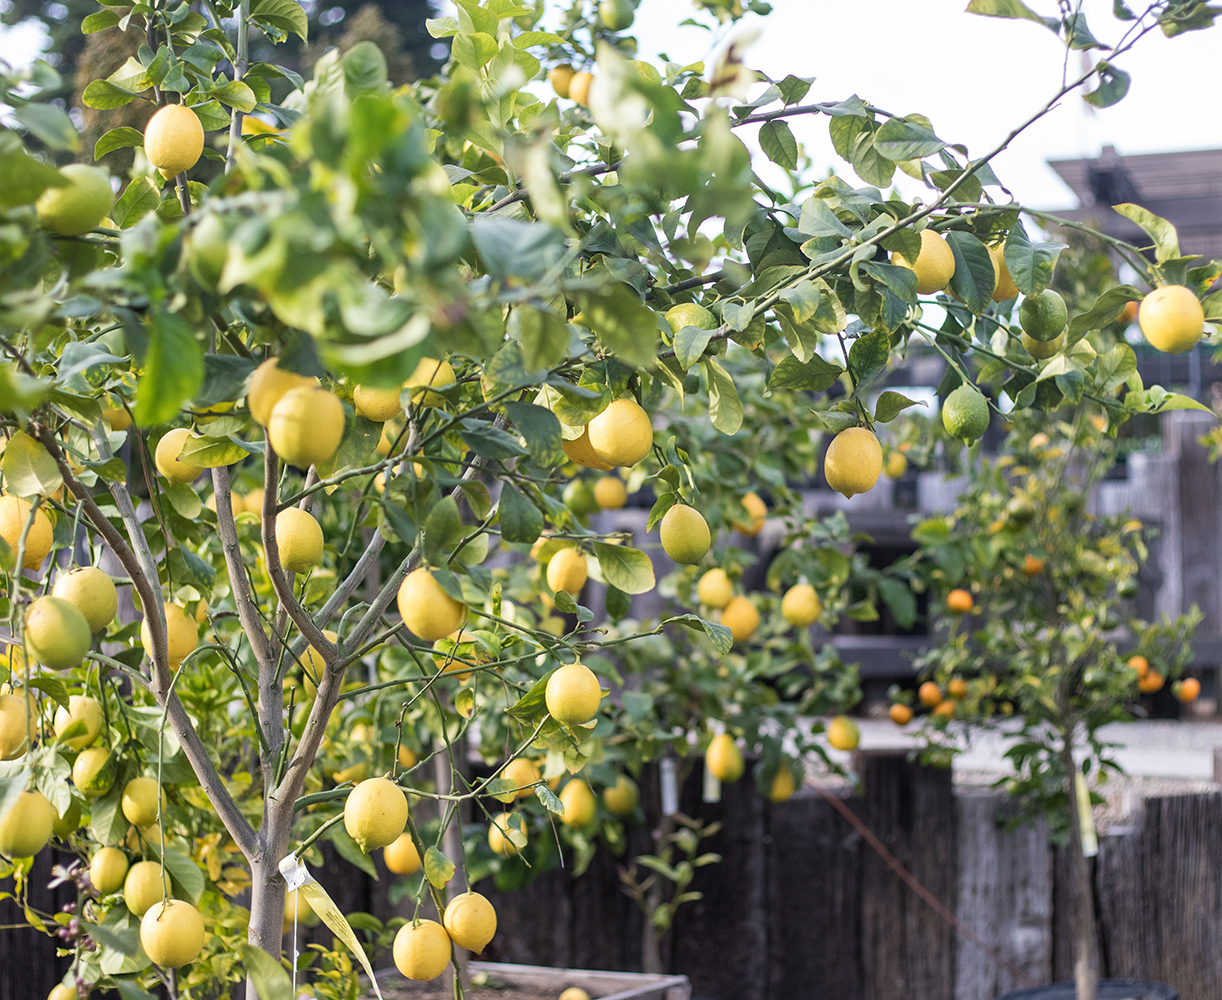 An image of a lemon tree